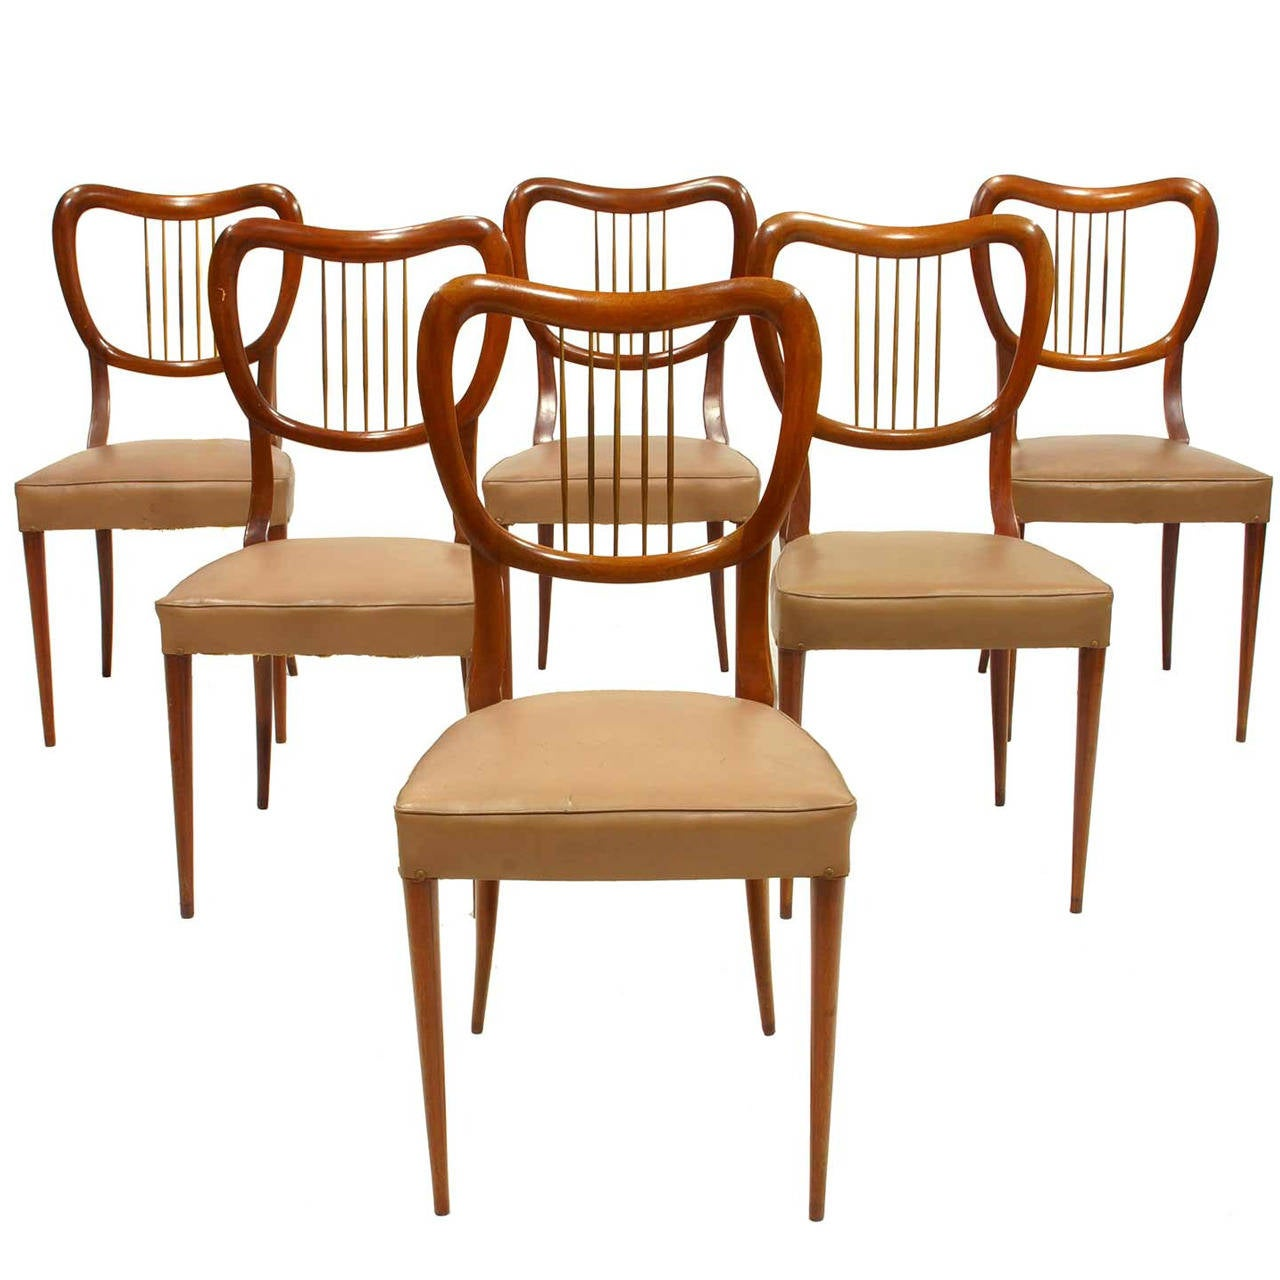 Six Italian Mid-Century Modern 1950s Chairs For Sale